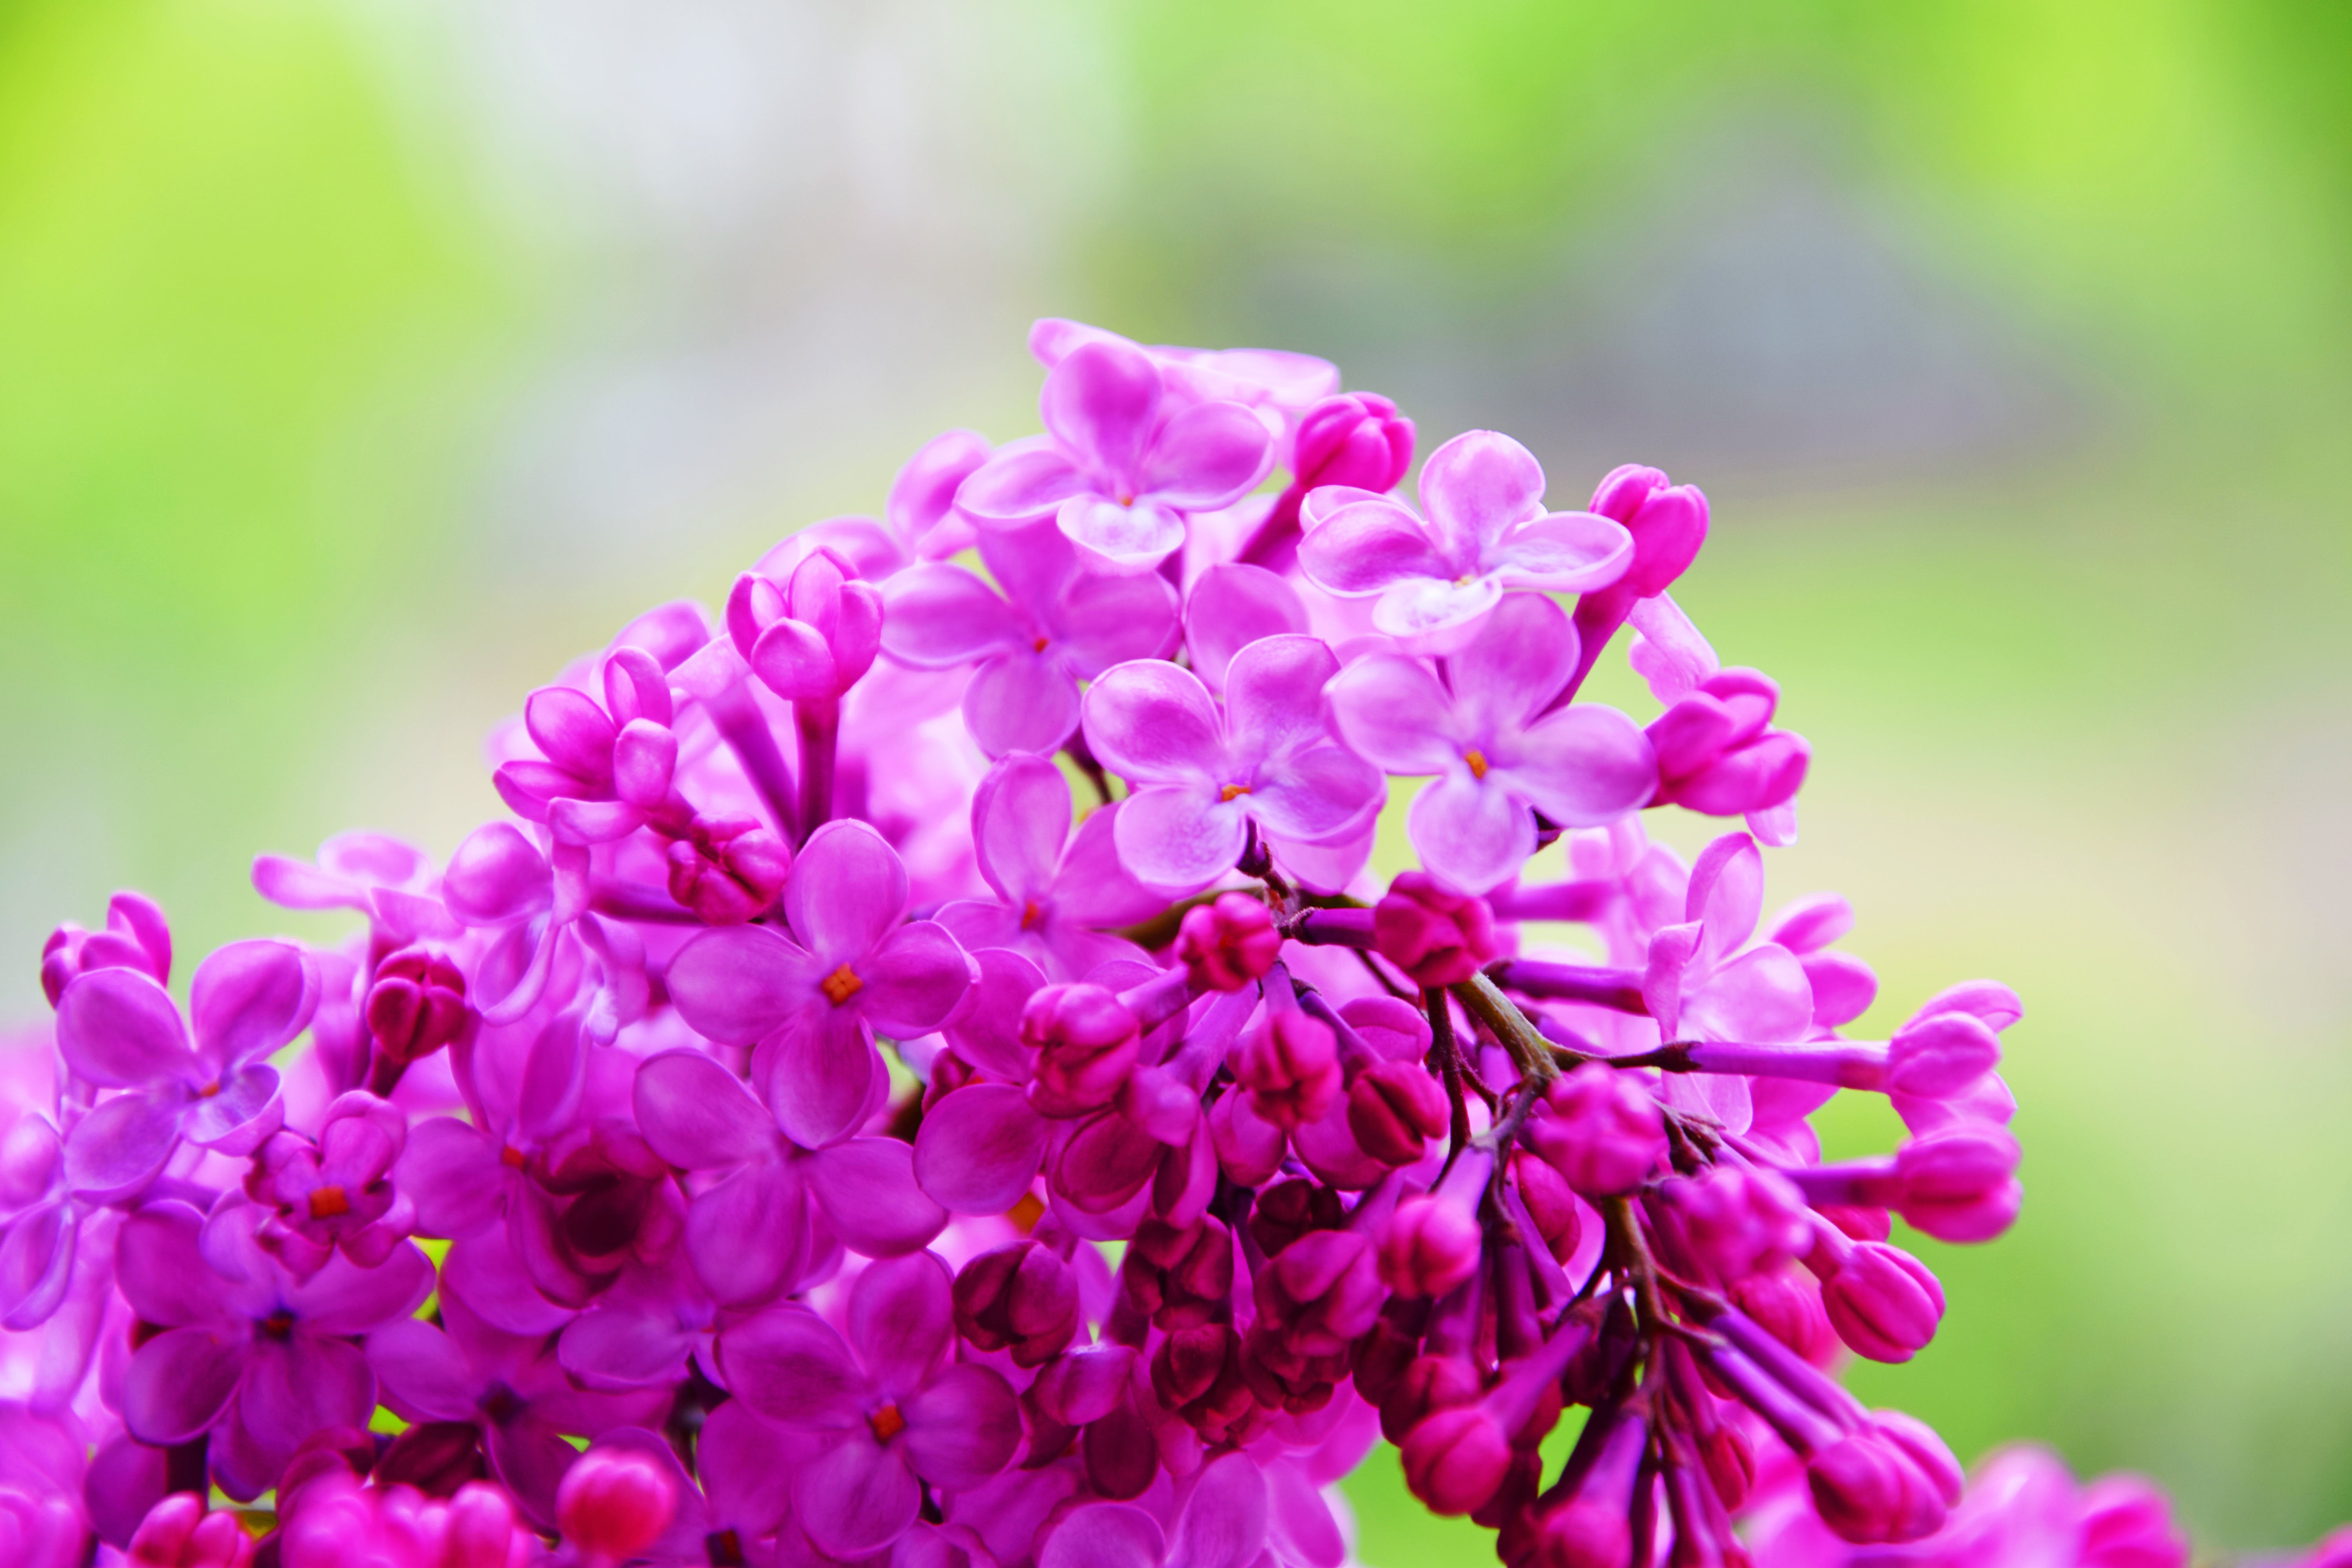 Selective Focus Photo of Pink Petaled Flowers